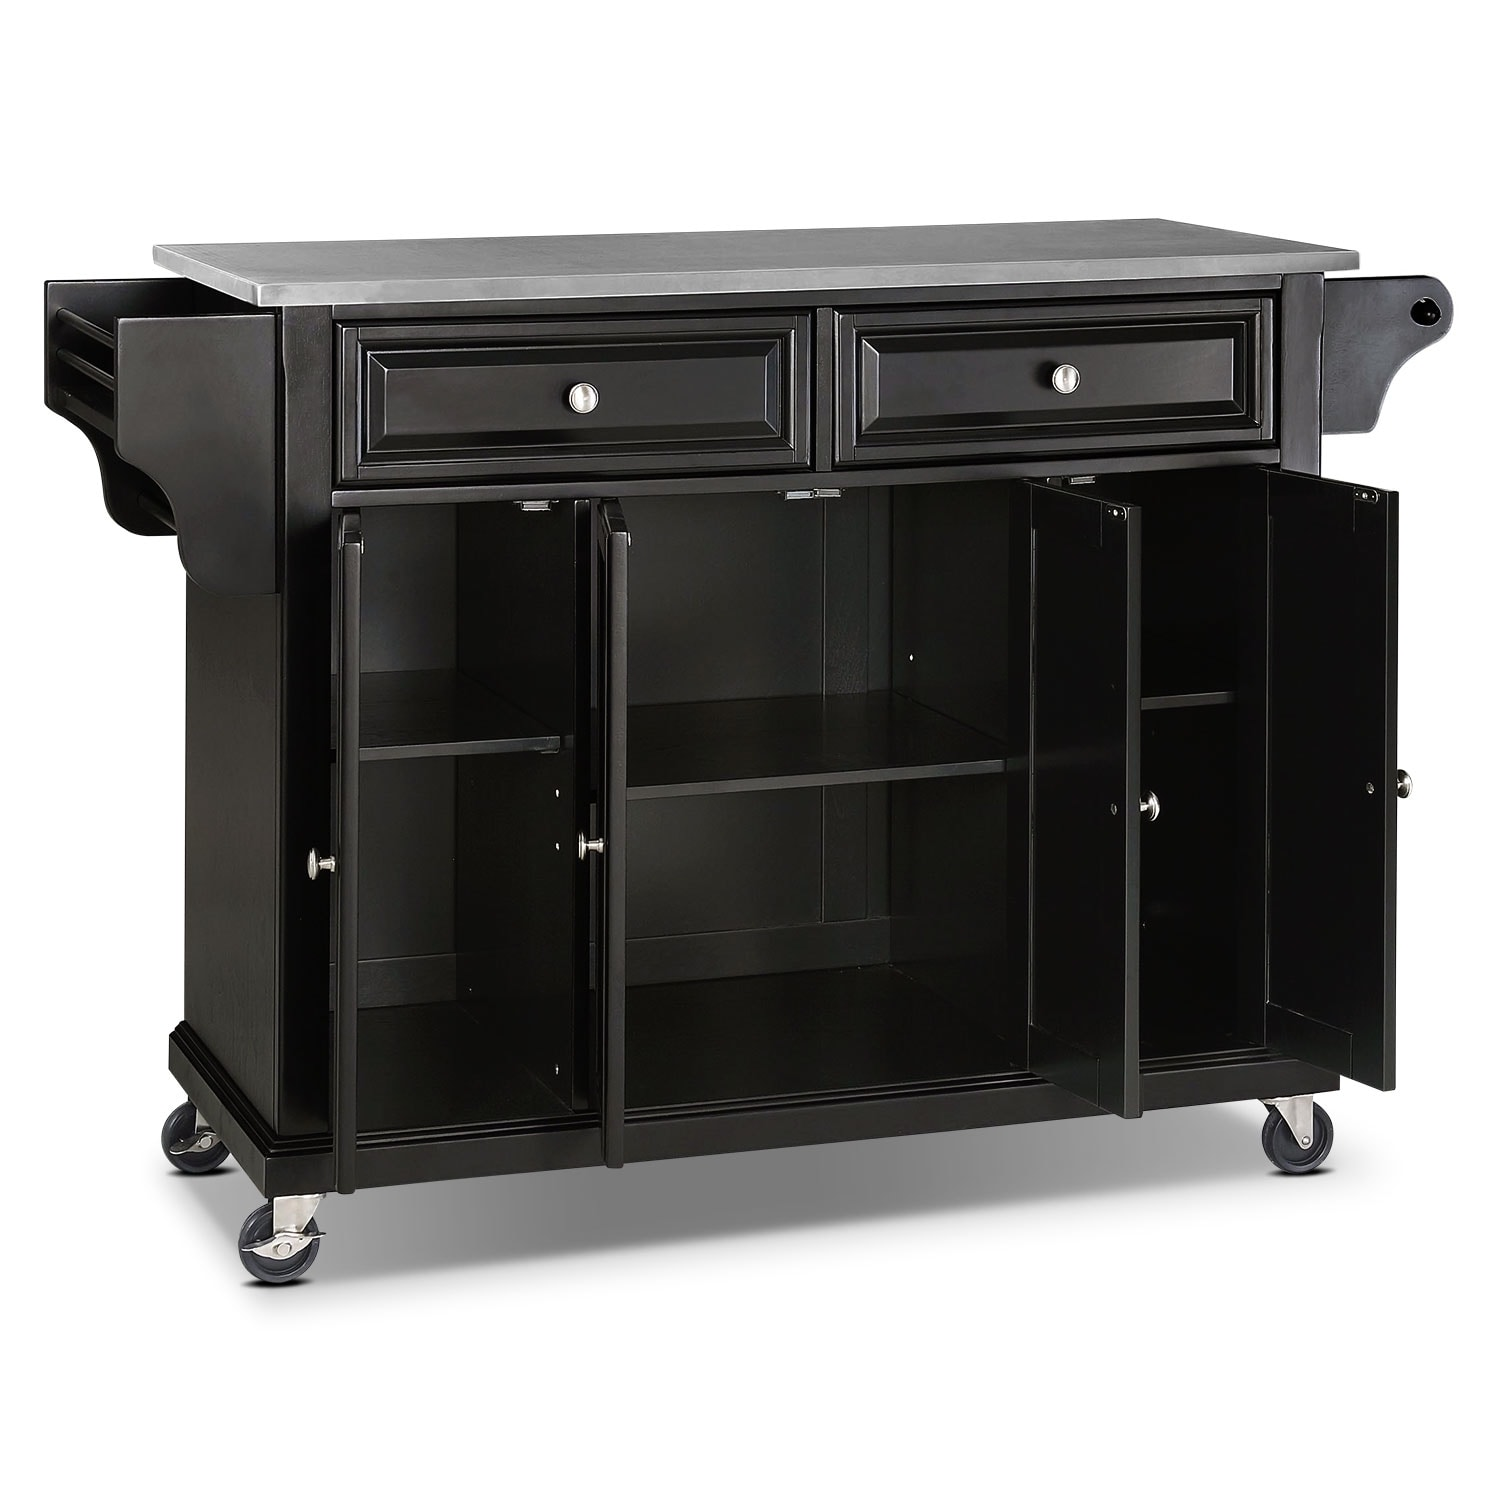 albany kitchen cart - black | value city furniture